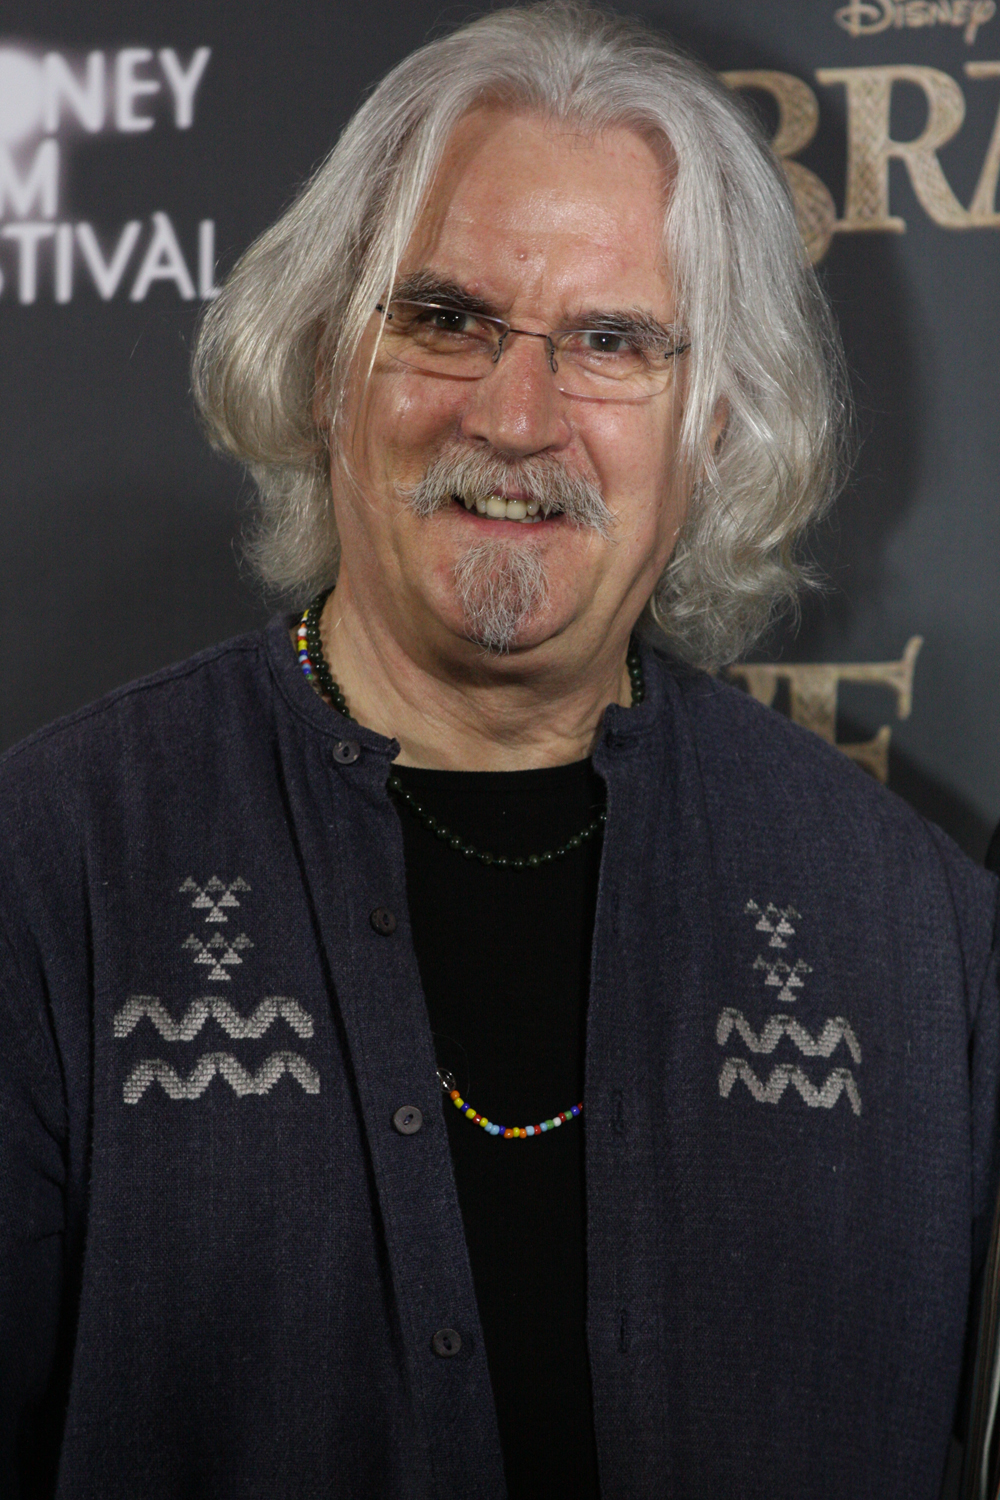 Billy Connolly (born 1942)